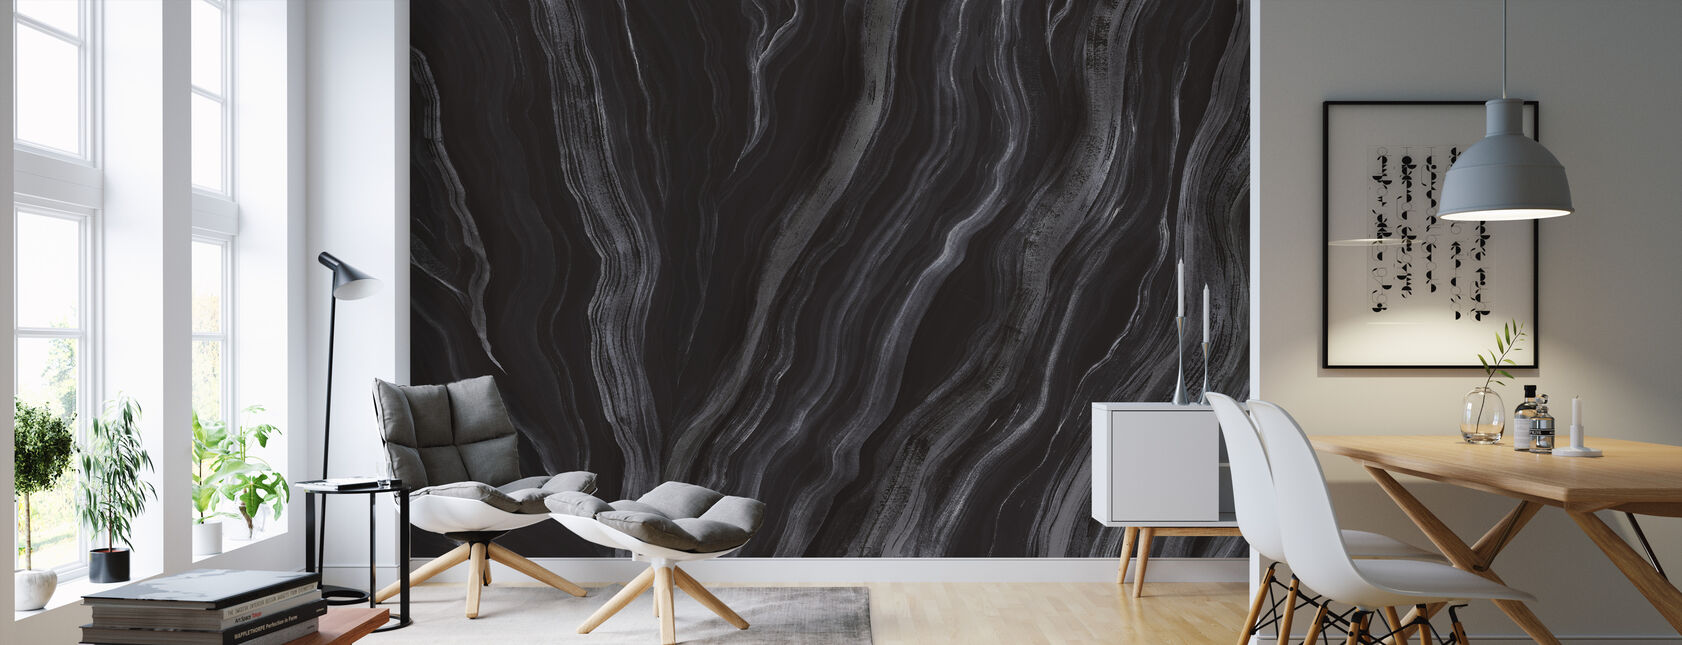 Unearth - Onyx - Wallpaper - Living Room